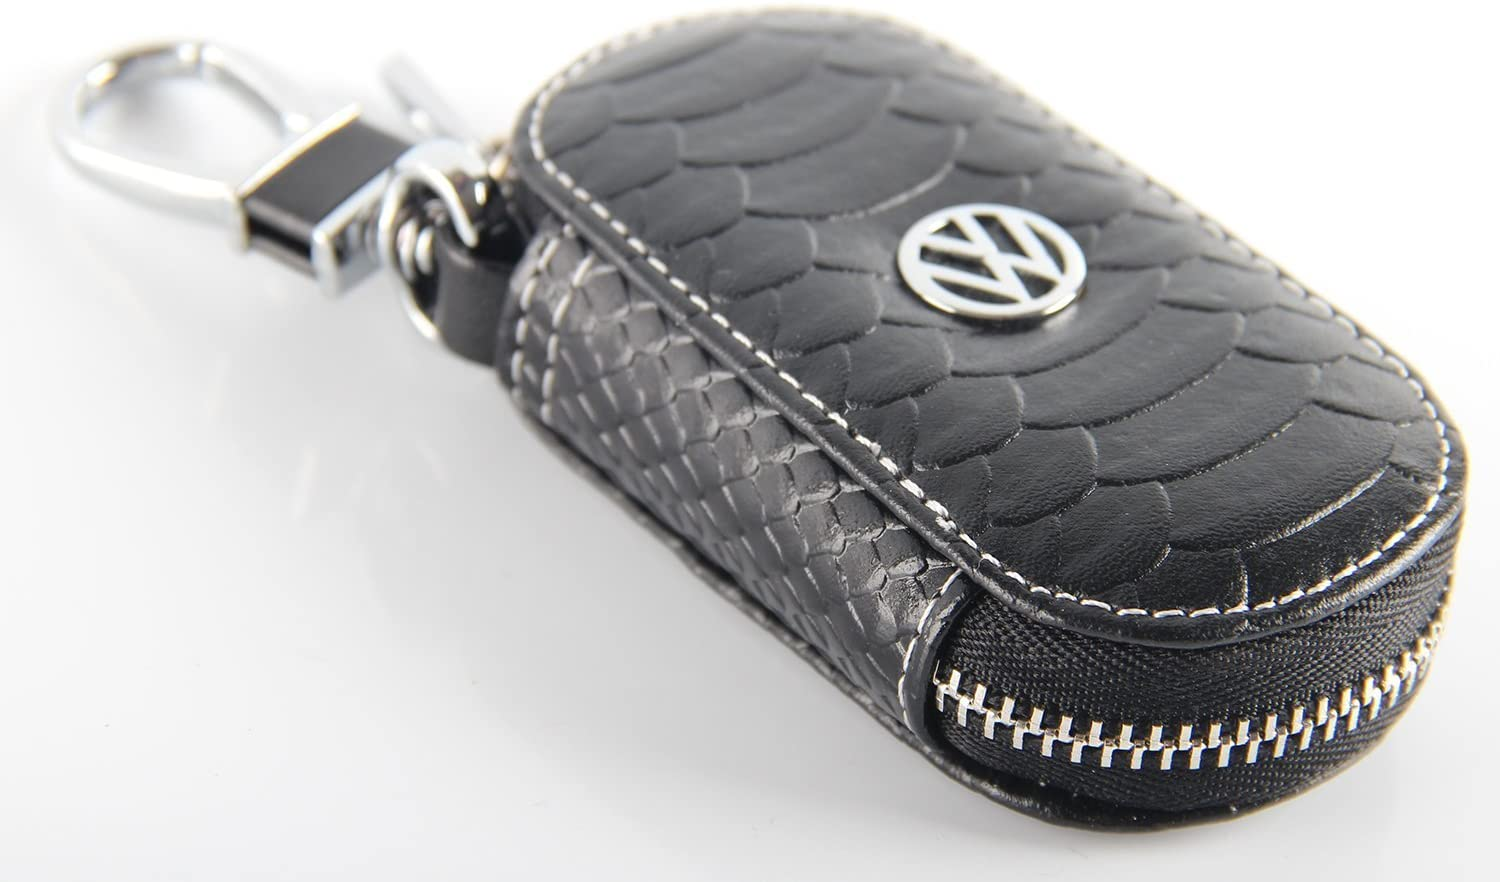 Key Chain Bag Oval Fish Scale Stripes Genuine Leather Ring Holder Case Car Auto Coin Universal Remote Smart Key Cover Fob Alarm Security Zipper Keychain Wallet Bag (Black, VW.Volkswagen)